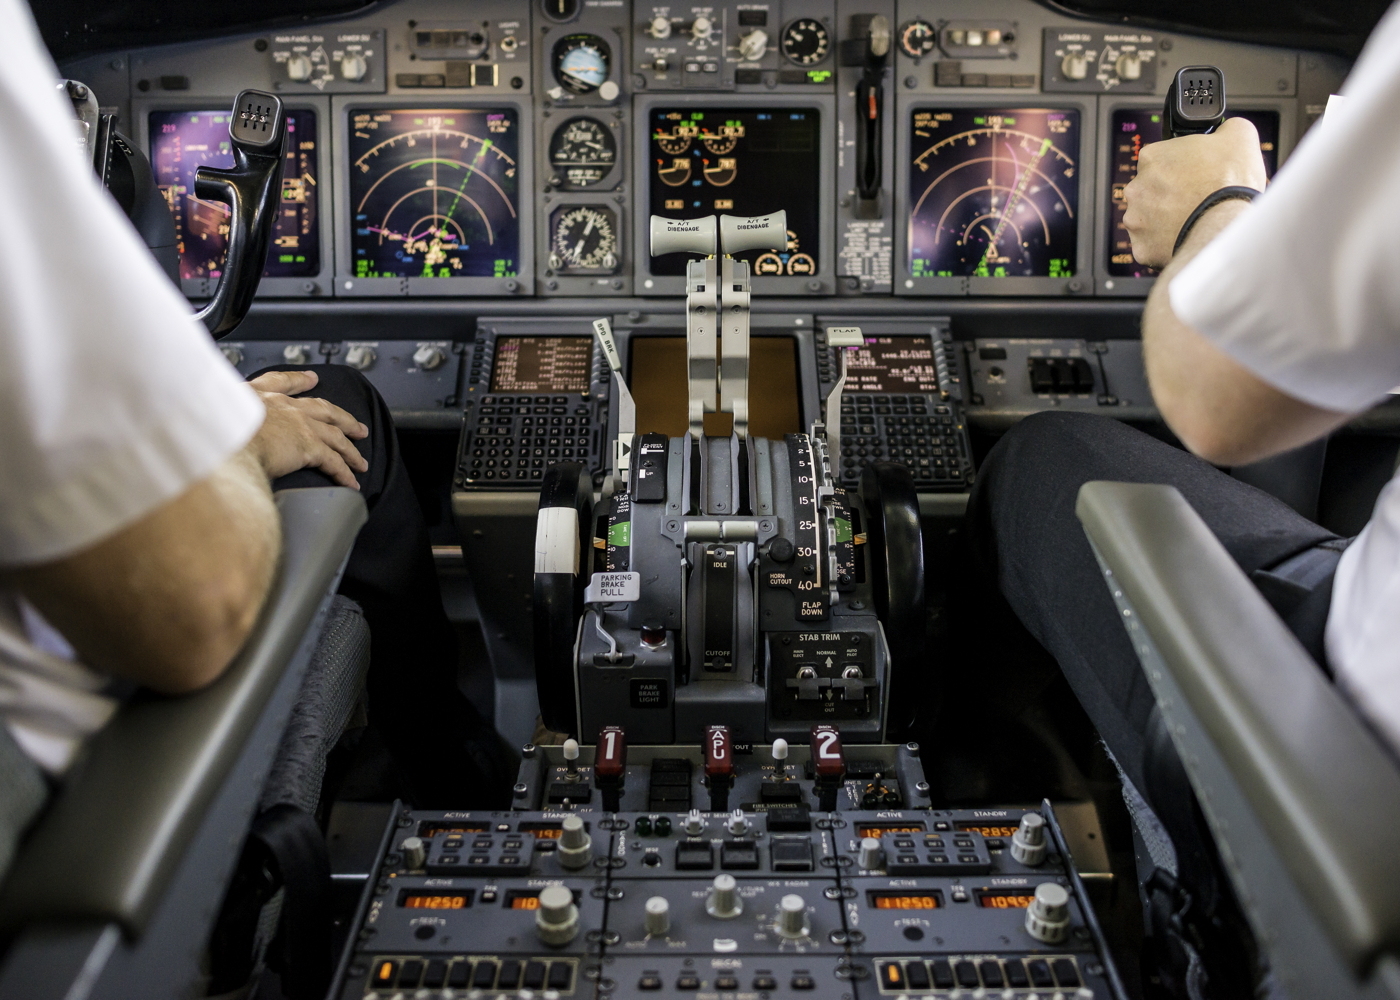 Boeing 737 cockpit automation